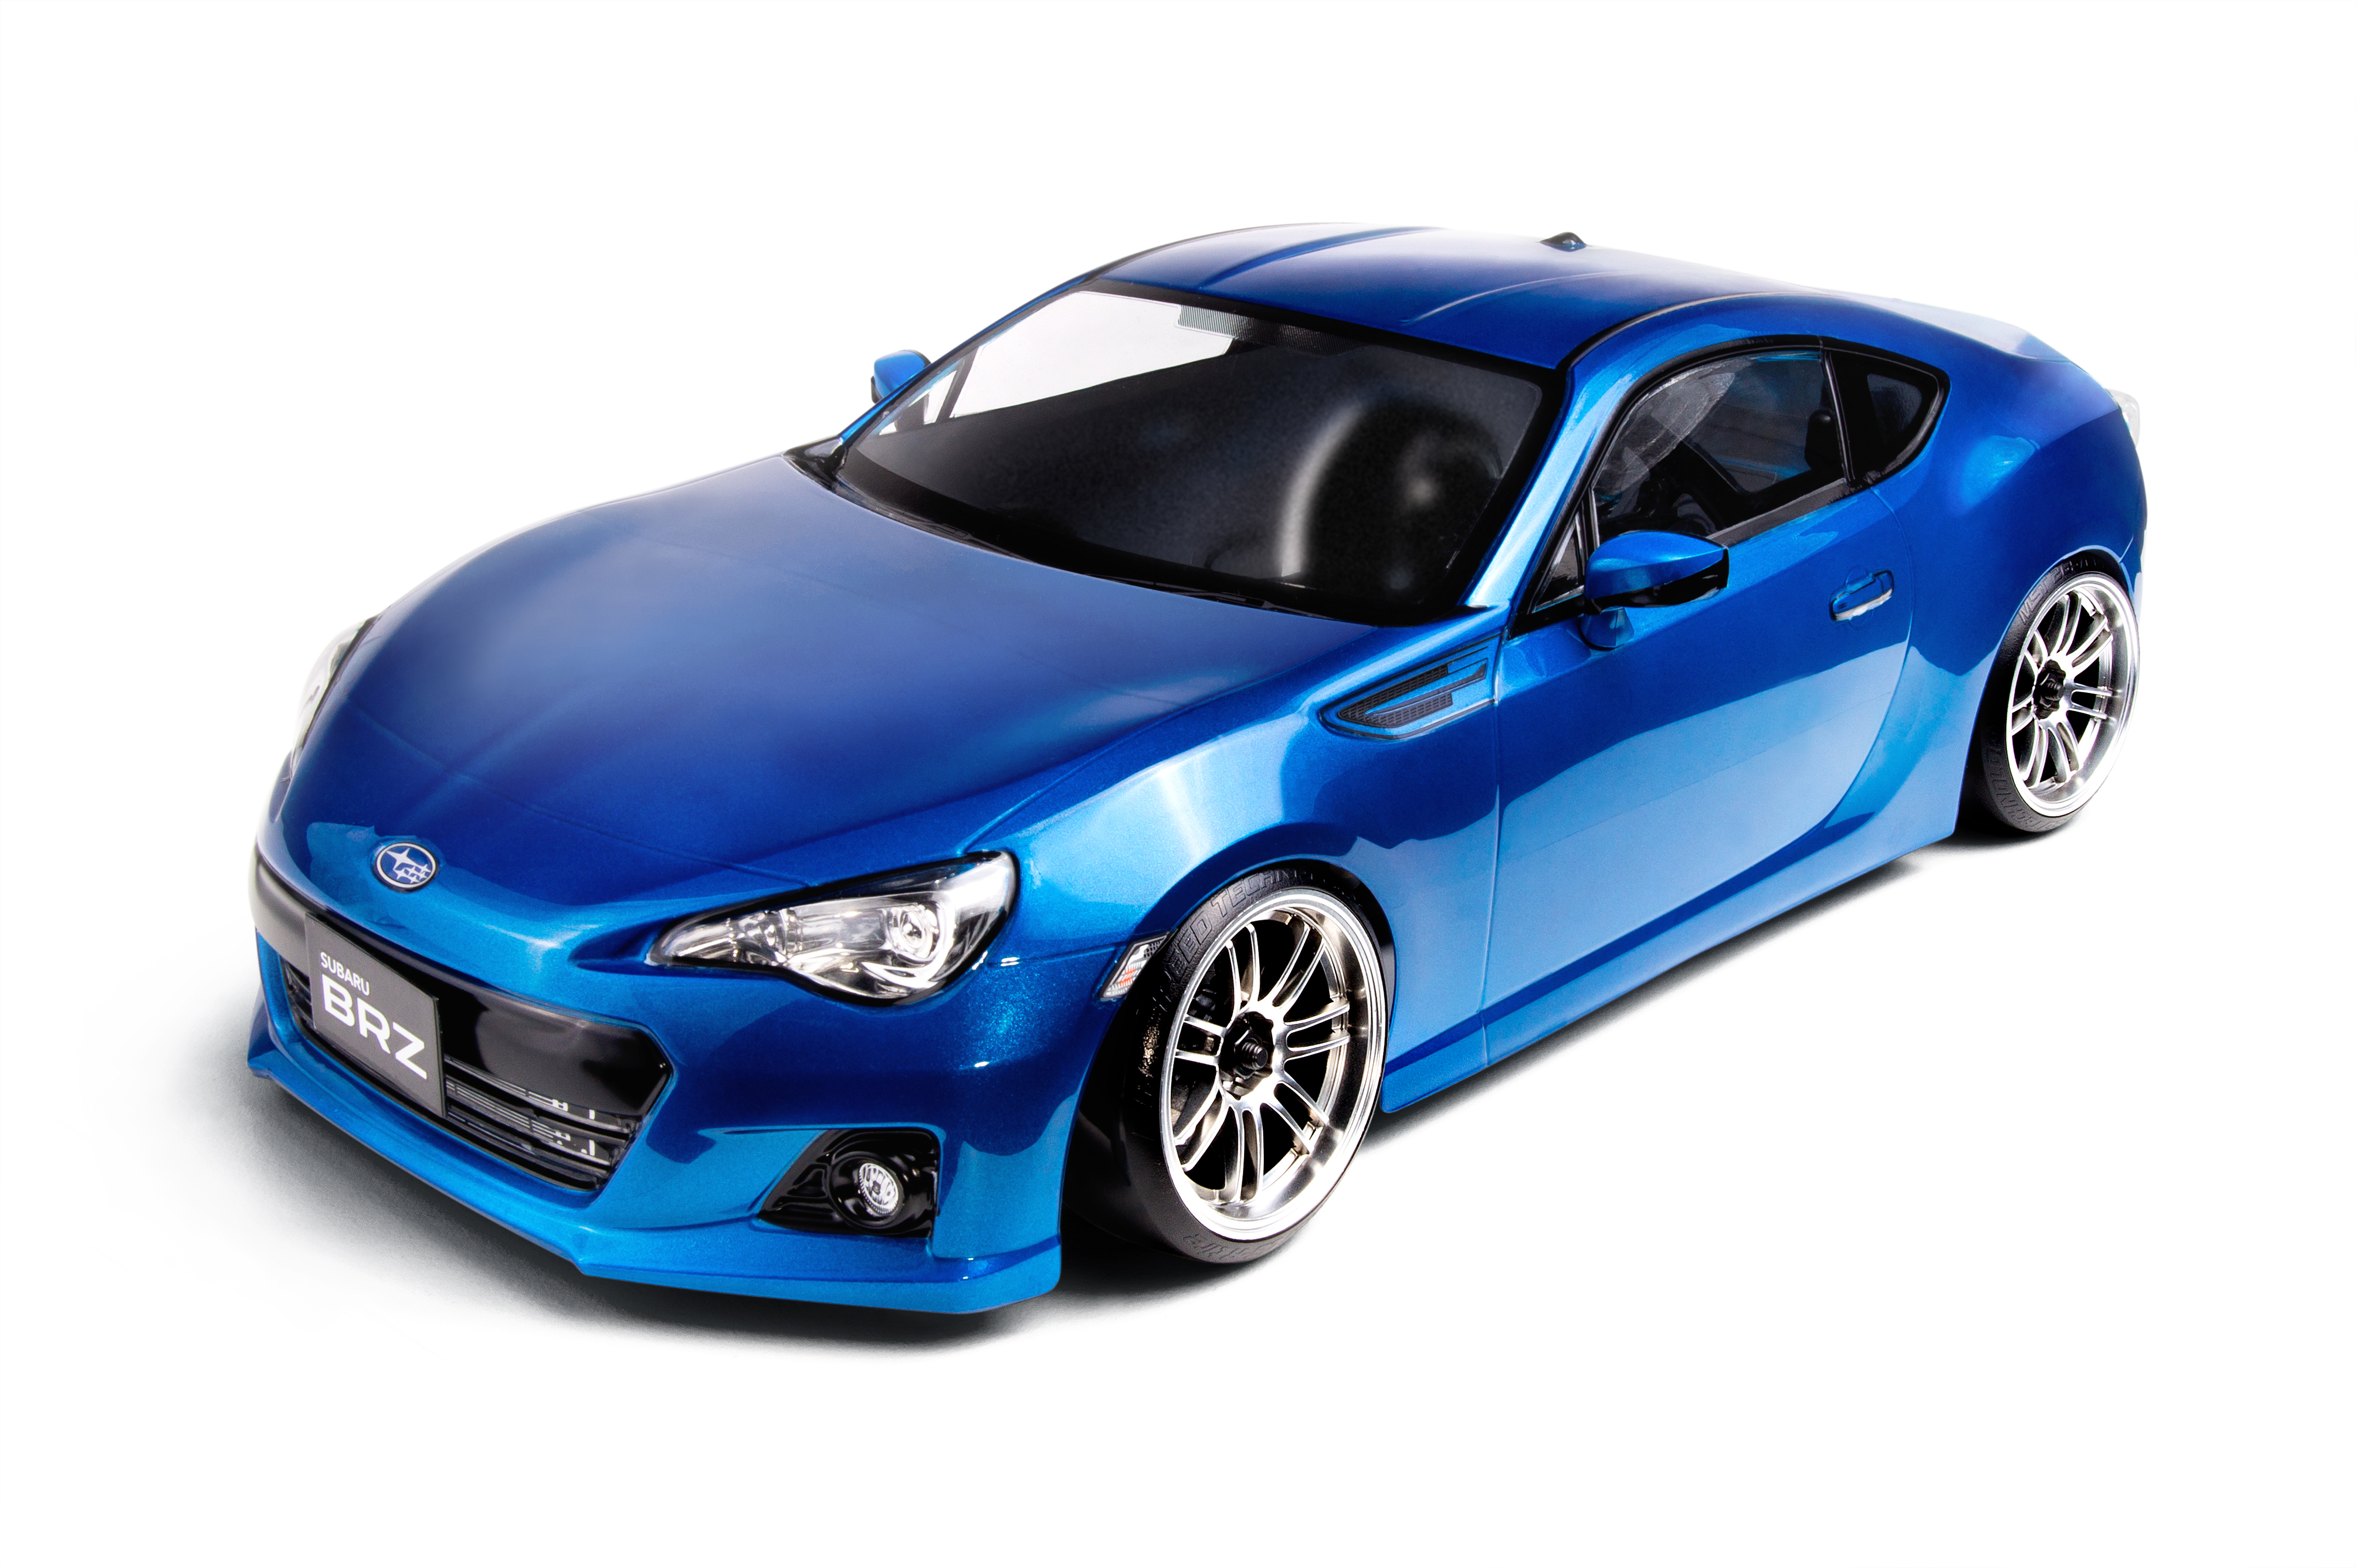 FXX-D 1/10 Scale 2WD RTR Electric Drift Car (2.4G) (brushless) SUBARU BRZ (blue)